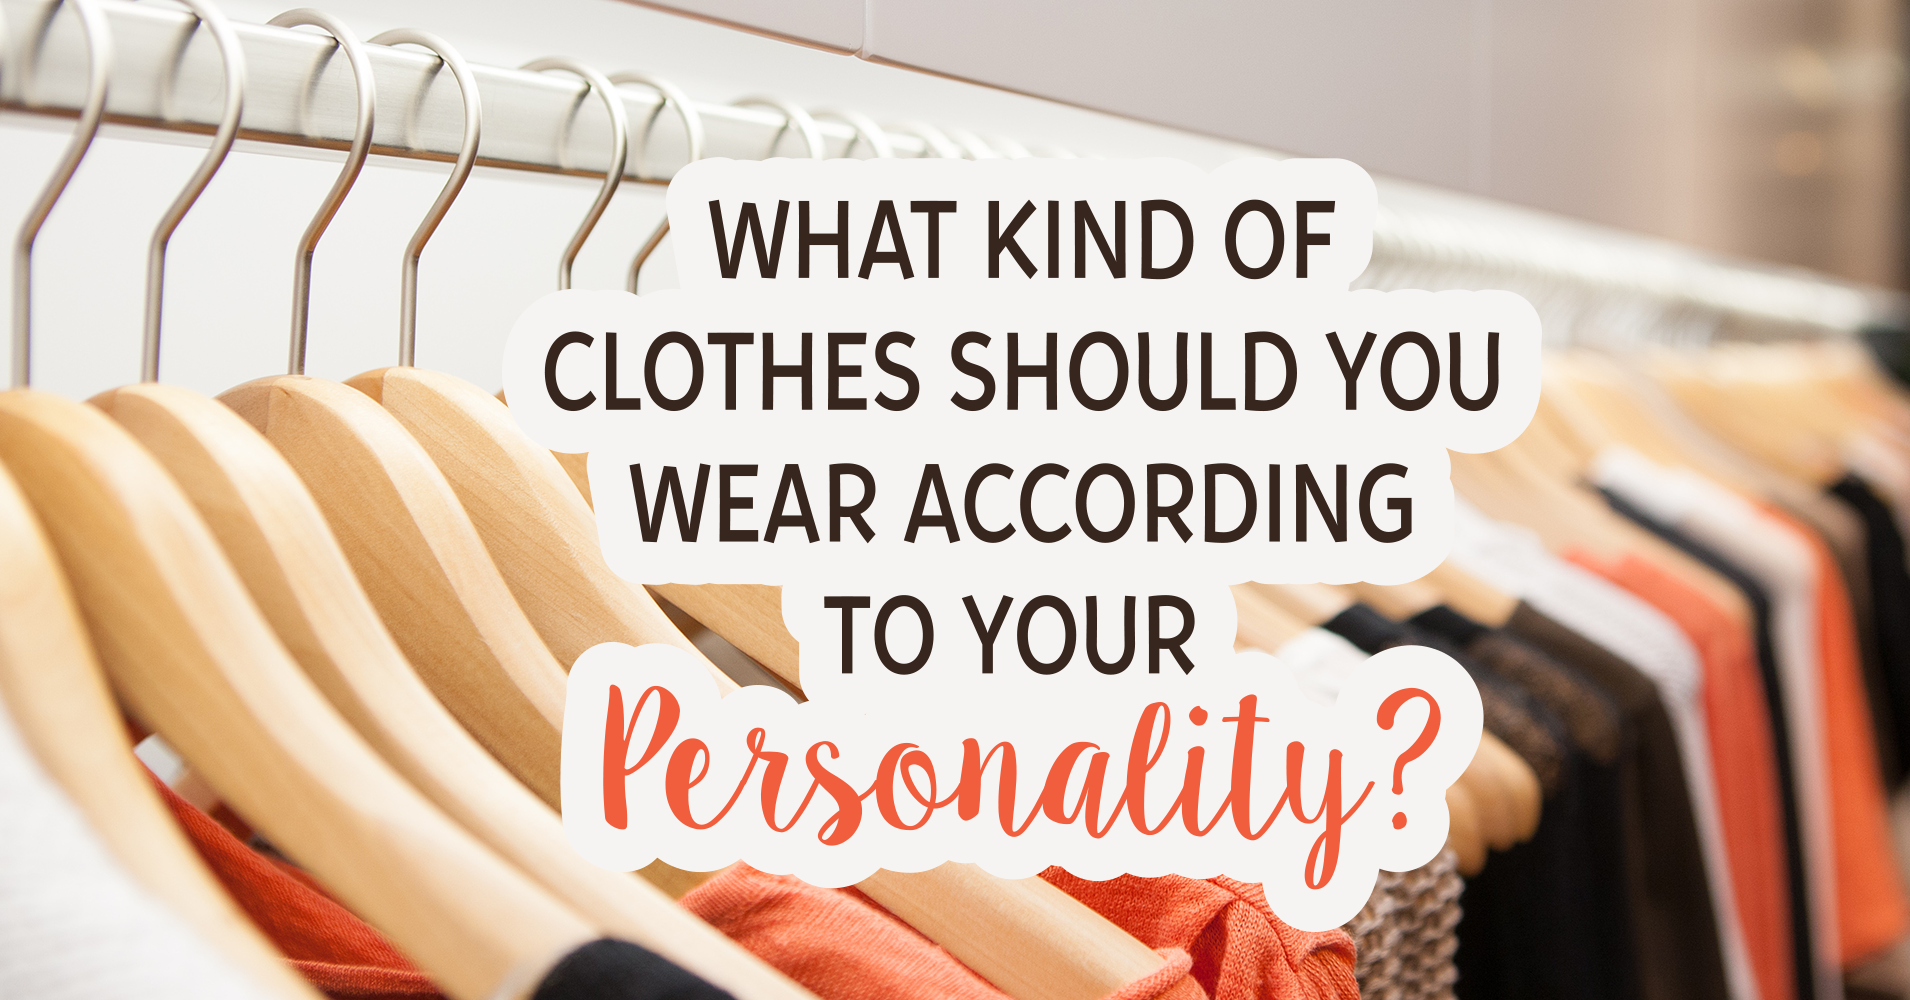 What Kind Of Clothes Should You Wear According To Your